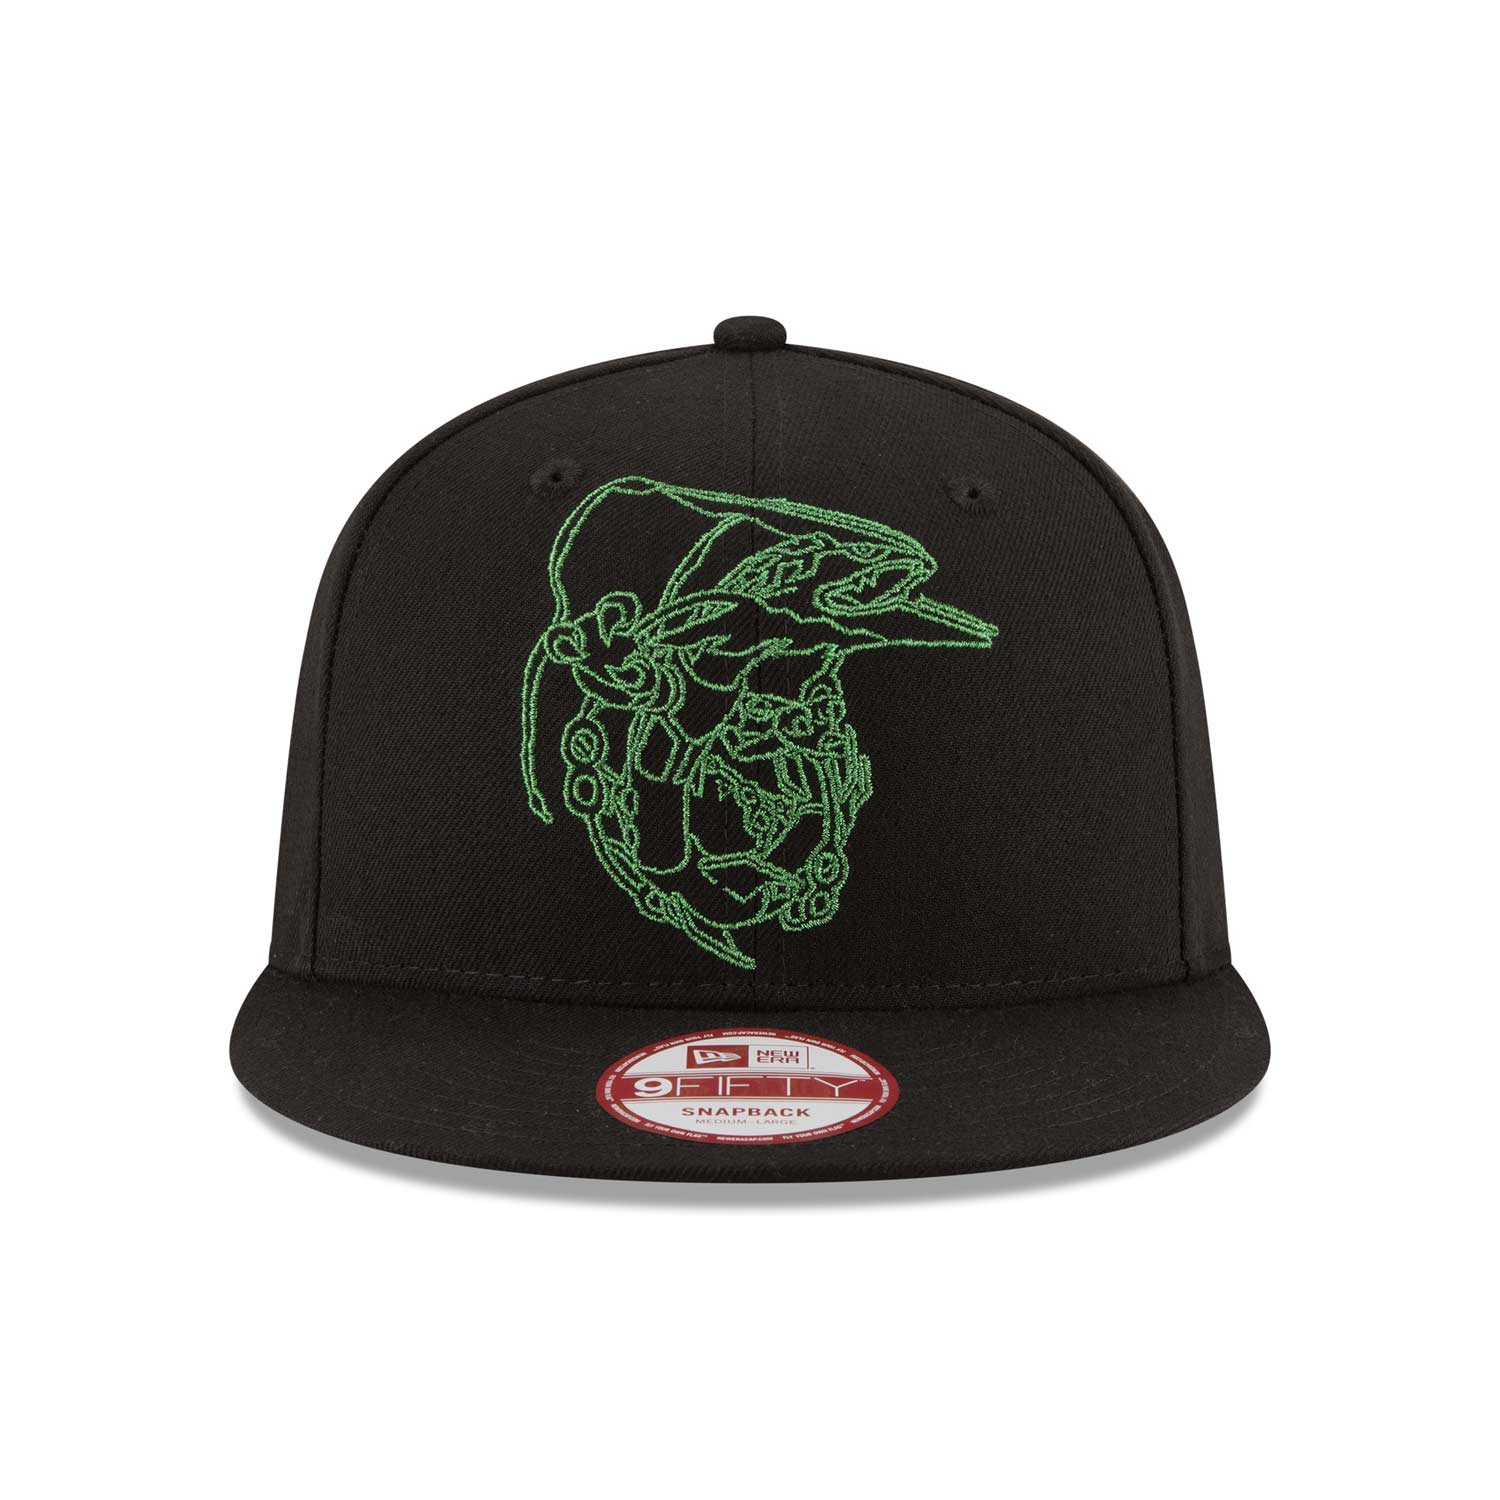 ... Image for Mega Rayquaza Eclipse 9FIFTY Baseball Cap by New Era (One  Size-Adult ... 59a5561ad18